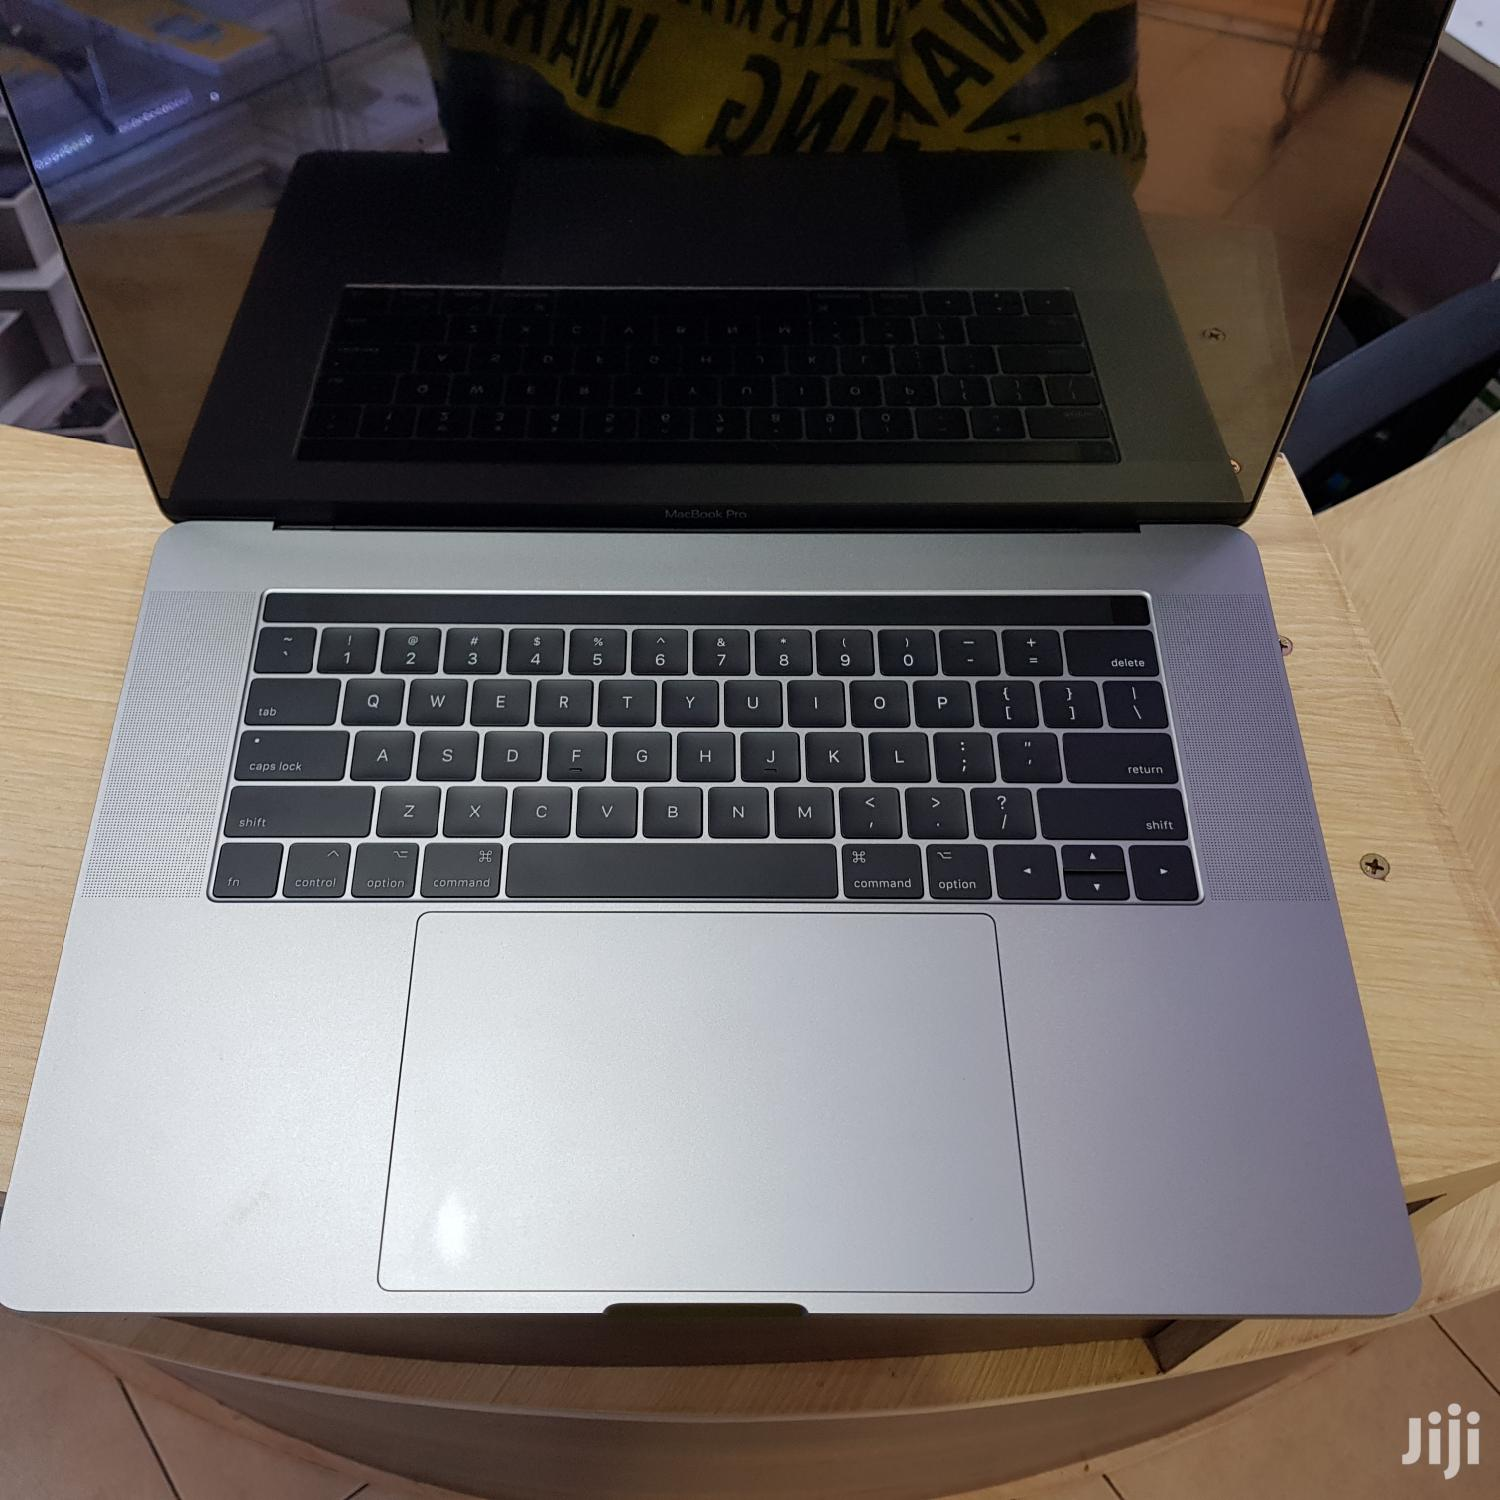 New Laptop Apple MacBook Pro 16GB Intel Core i7 SSD 256GB | Laptops & Computers for sale in Kampala, Central Region, Uganda